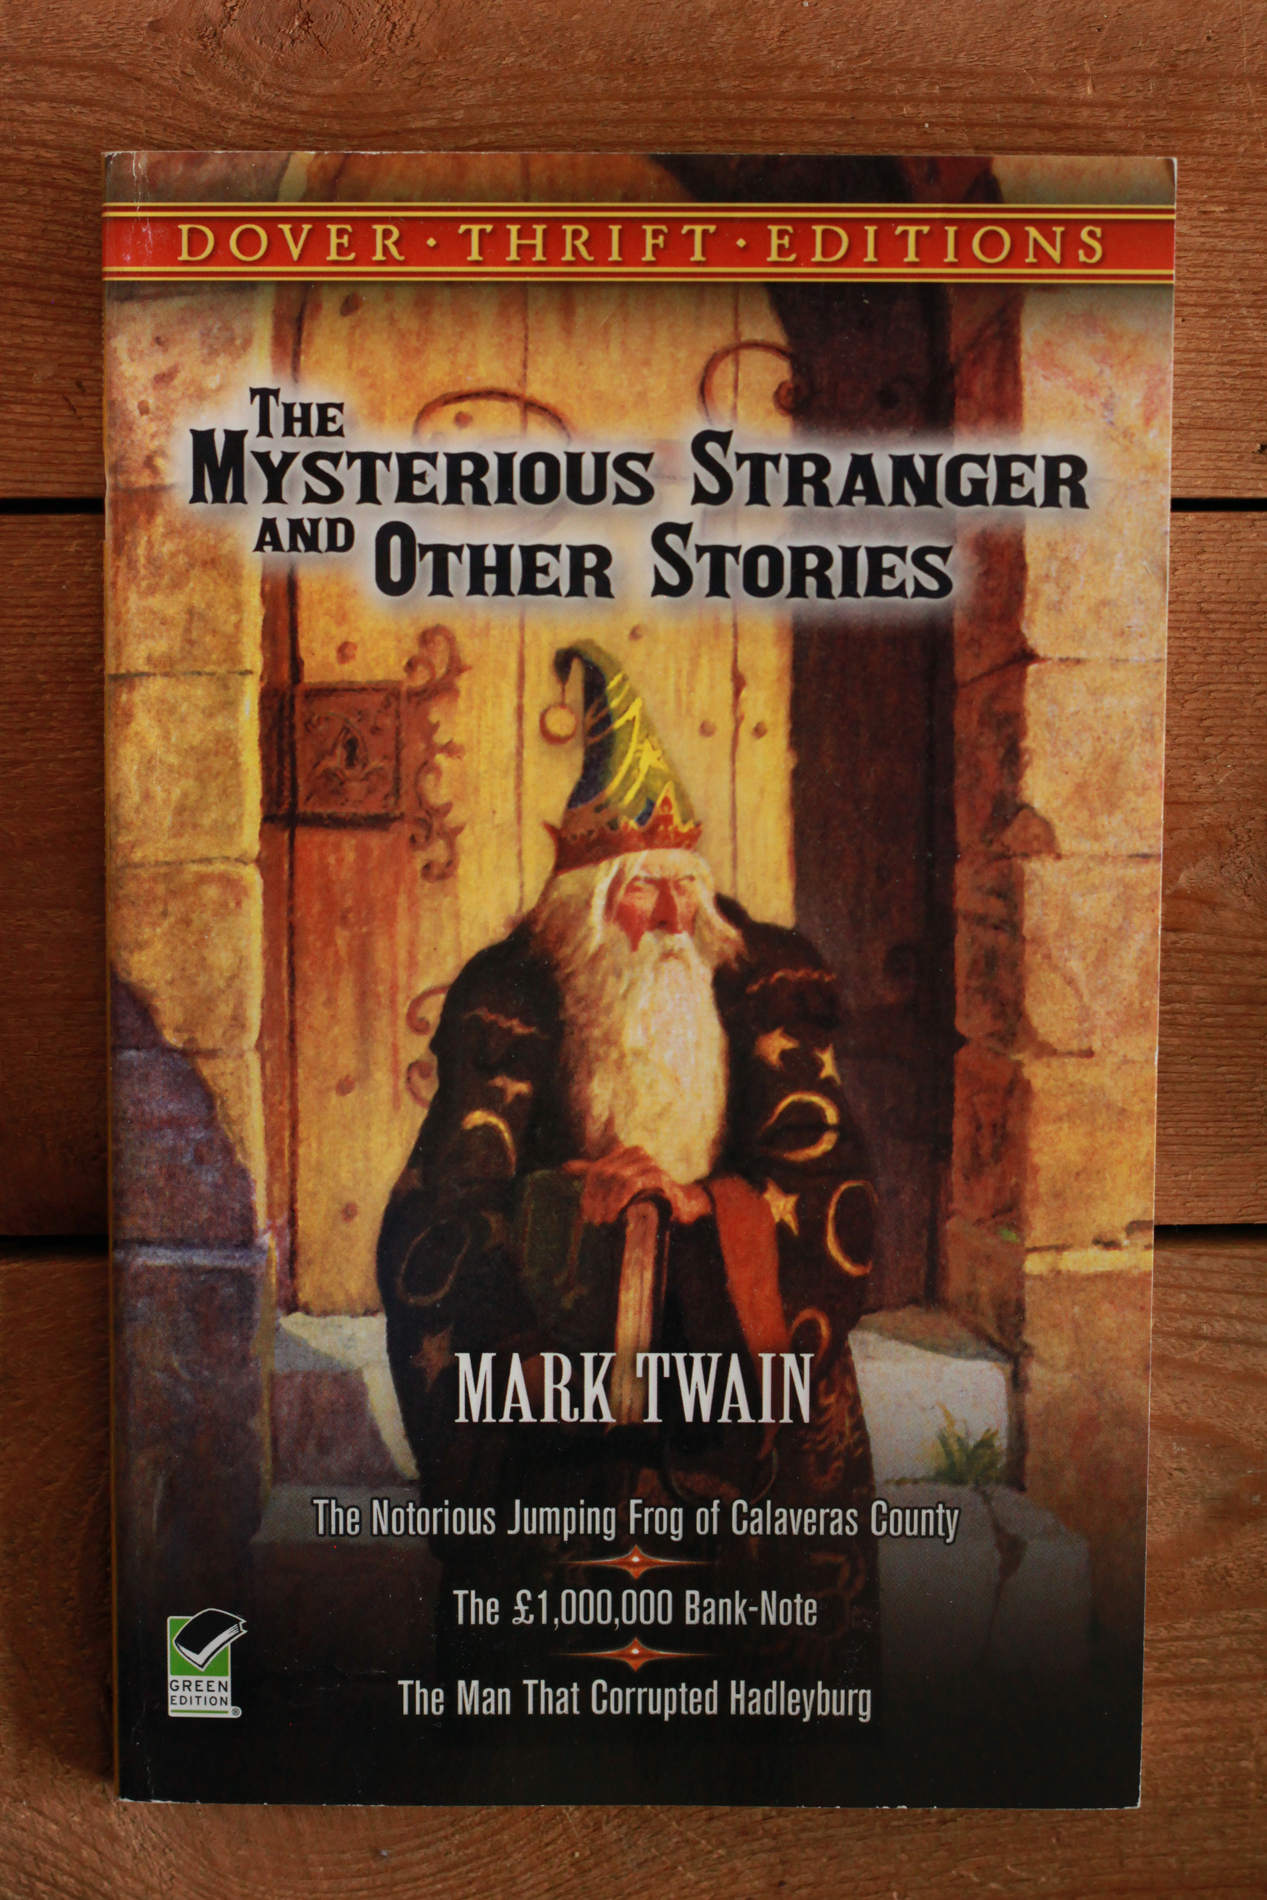 the flaws of mankind in the mysterious stranger by mark twain Satan, also known as the mysterious stranger, is the primary antagonist/protagonist of a mark twain novella, the mysterious stranger the resulting animated adaptation is widely considered one of the most disturbing monsters in animation a somewhat major player in non disney villains.